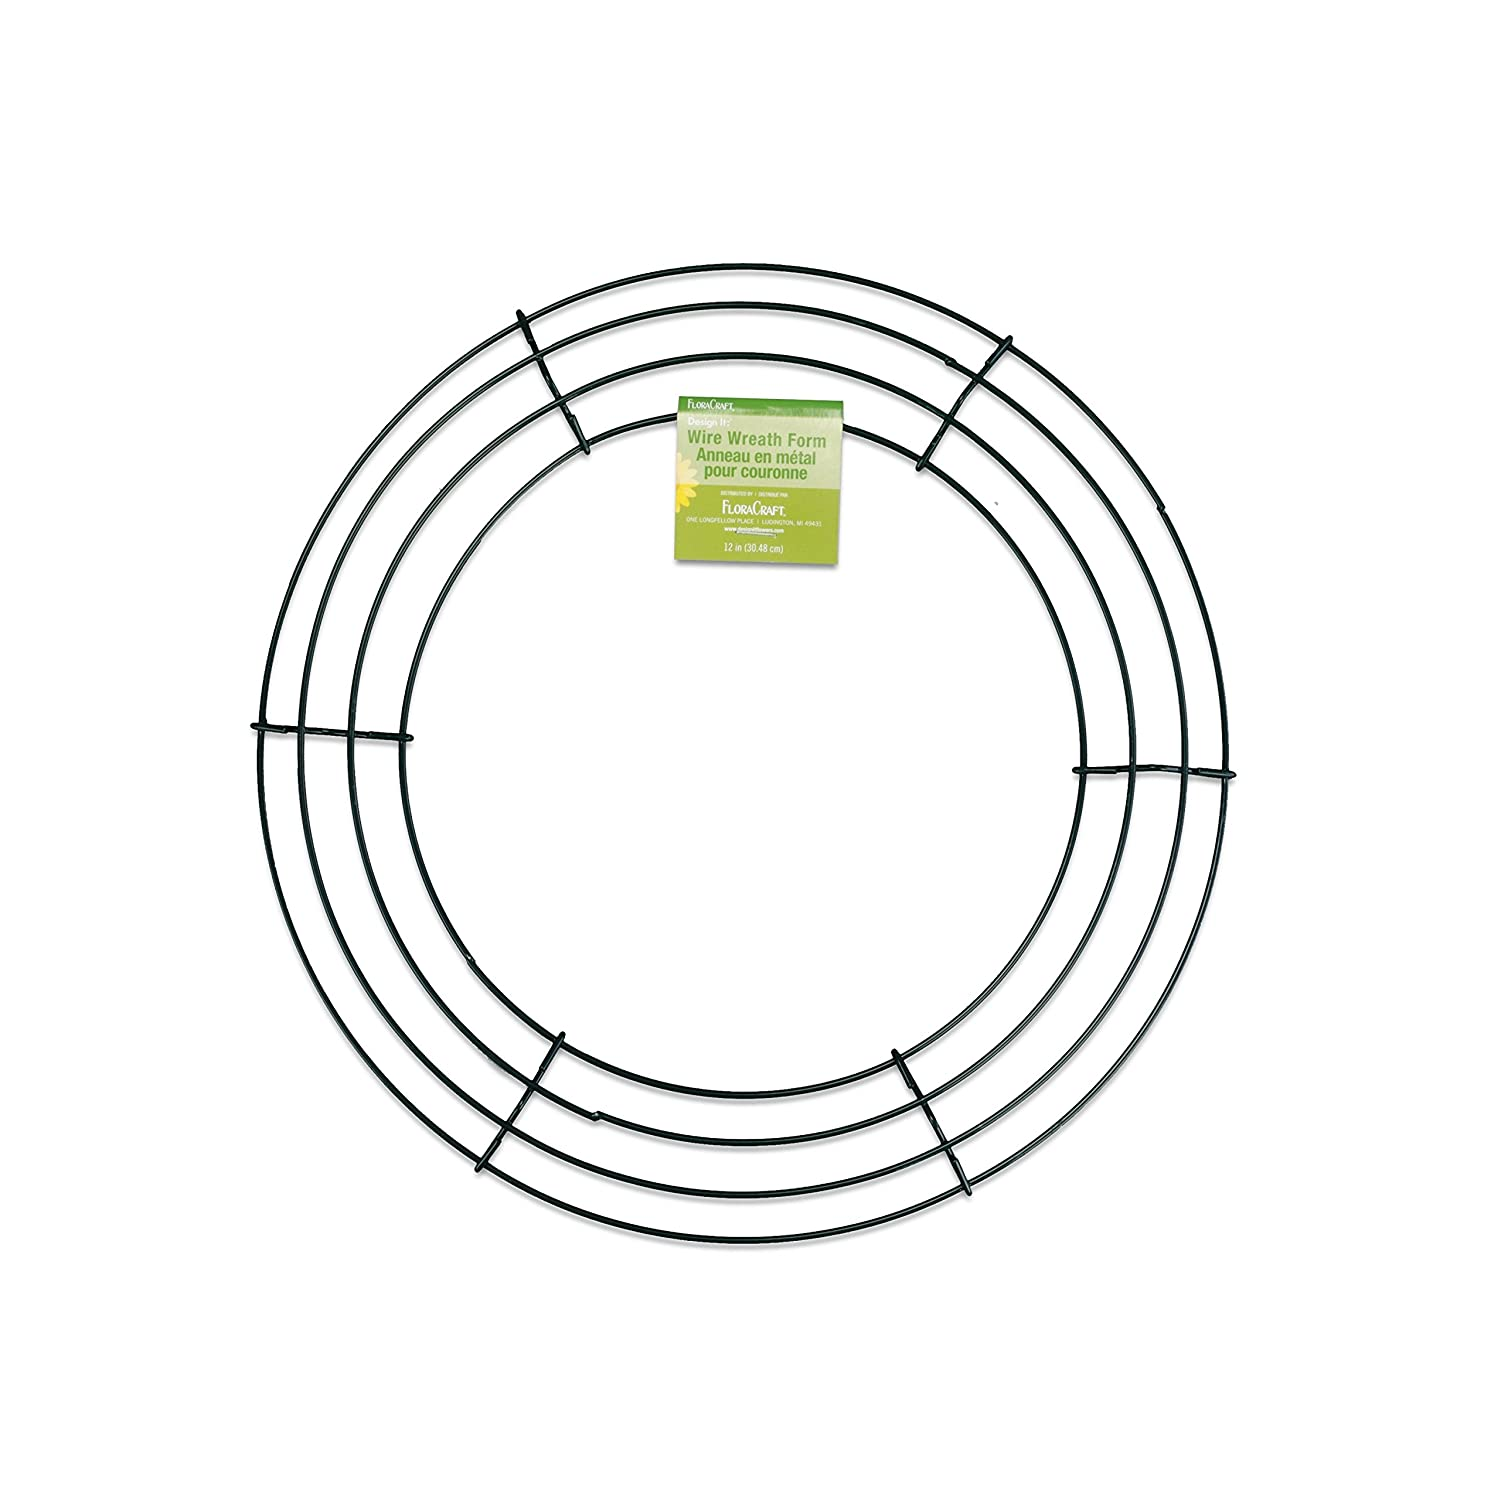 wire wreath form - Bindrdn.waterefficiency.co